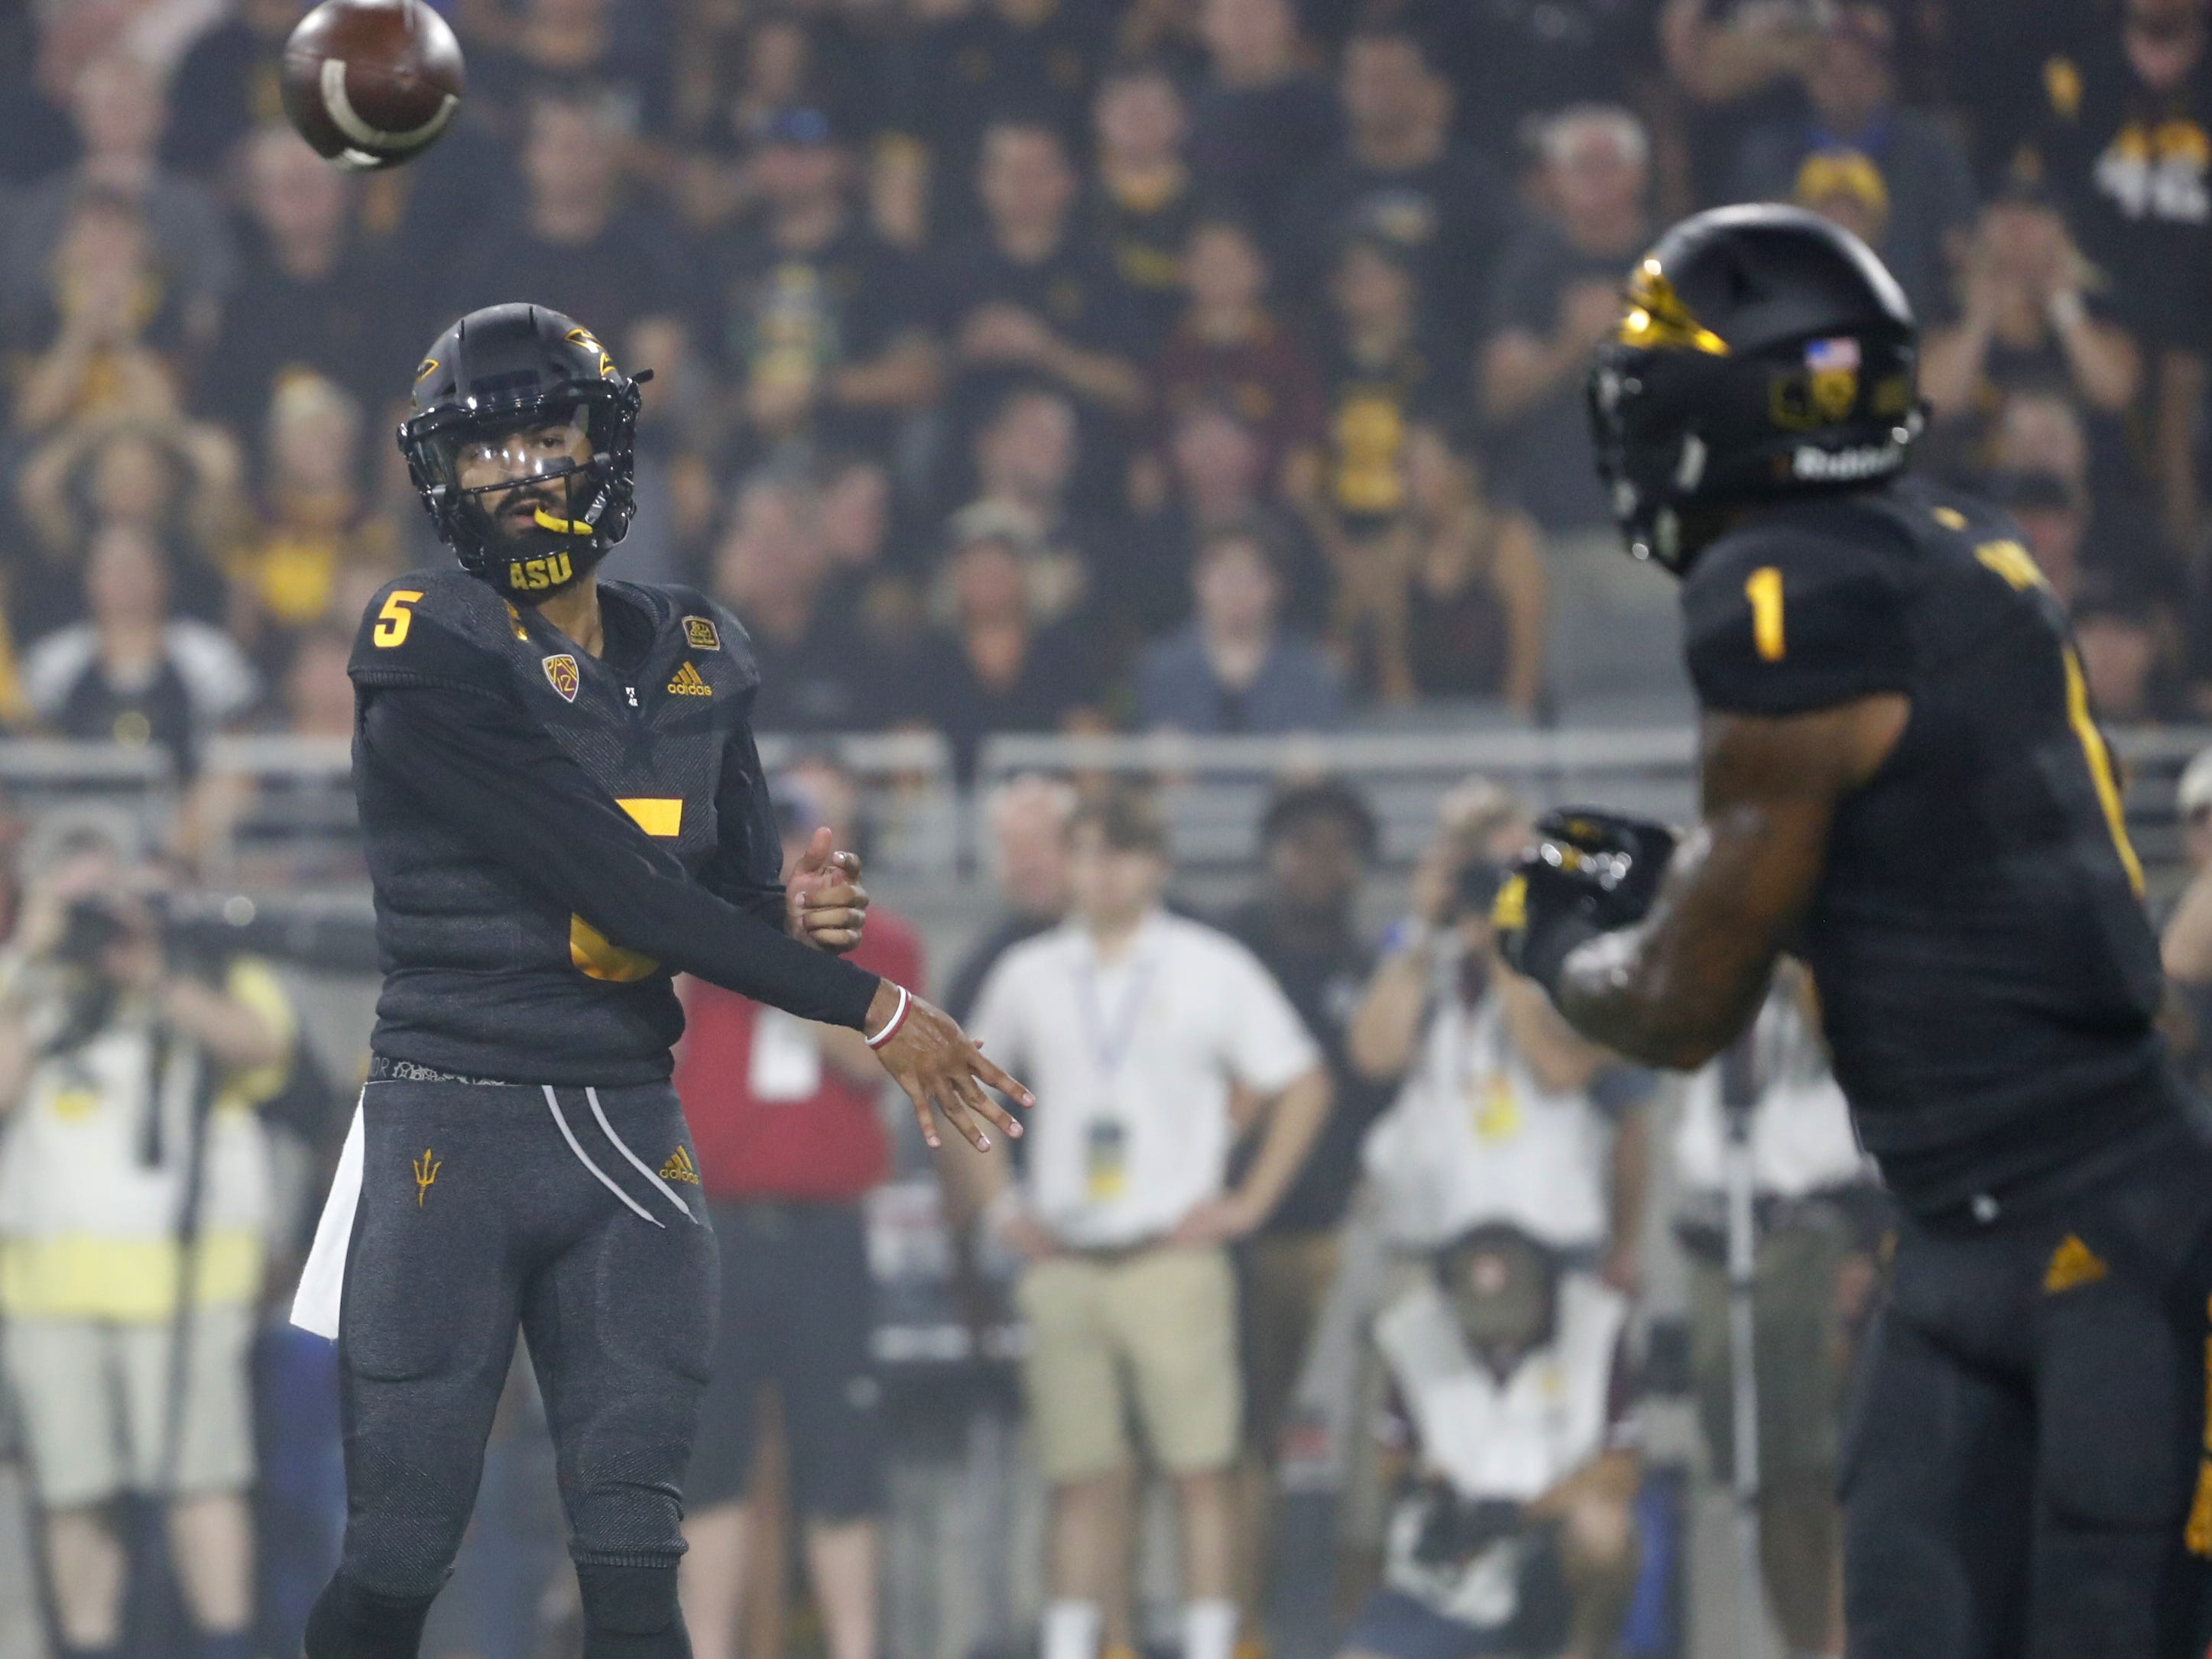 Arizona State Sun Devils quarterback Manny Wilkins (5) throws a pass to Arizona State Sun Devils wide receiver N'Keal Harry (1) during the first quarter against Michigan State at Sun Devil Stadium in Tempe, Ariz. on Sept. 8, 2018.